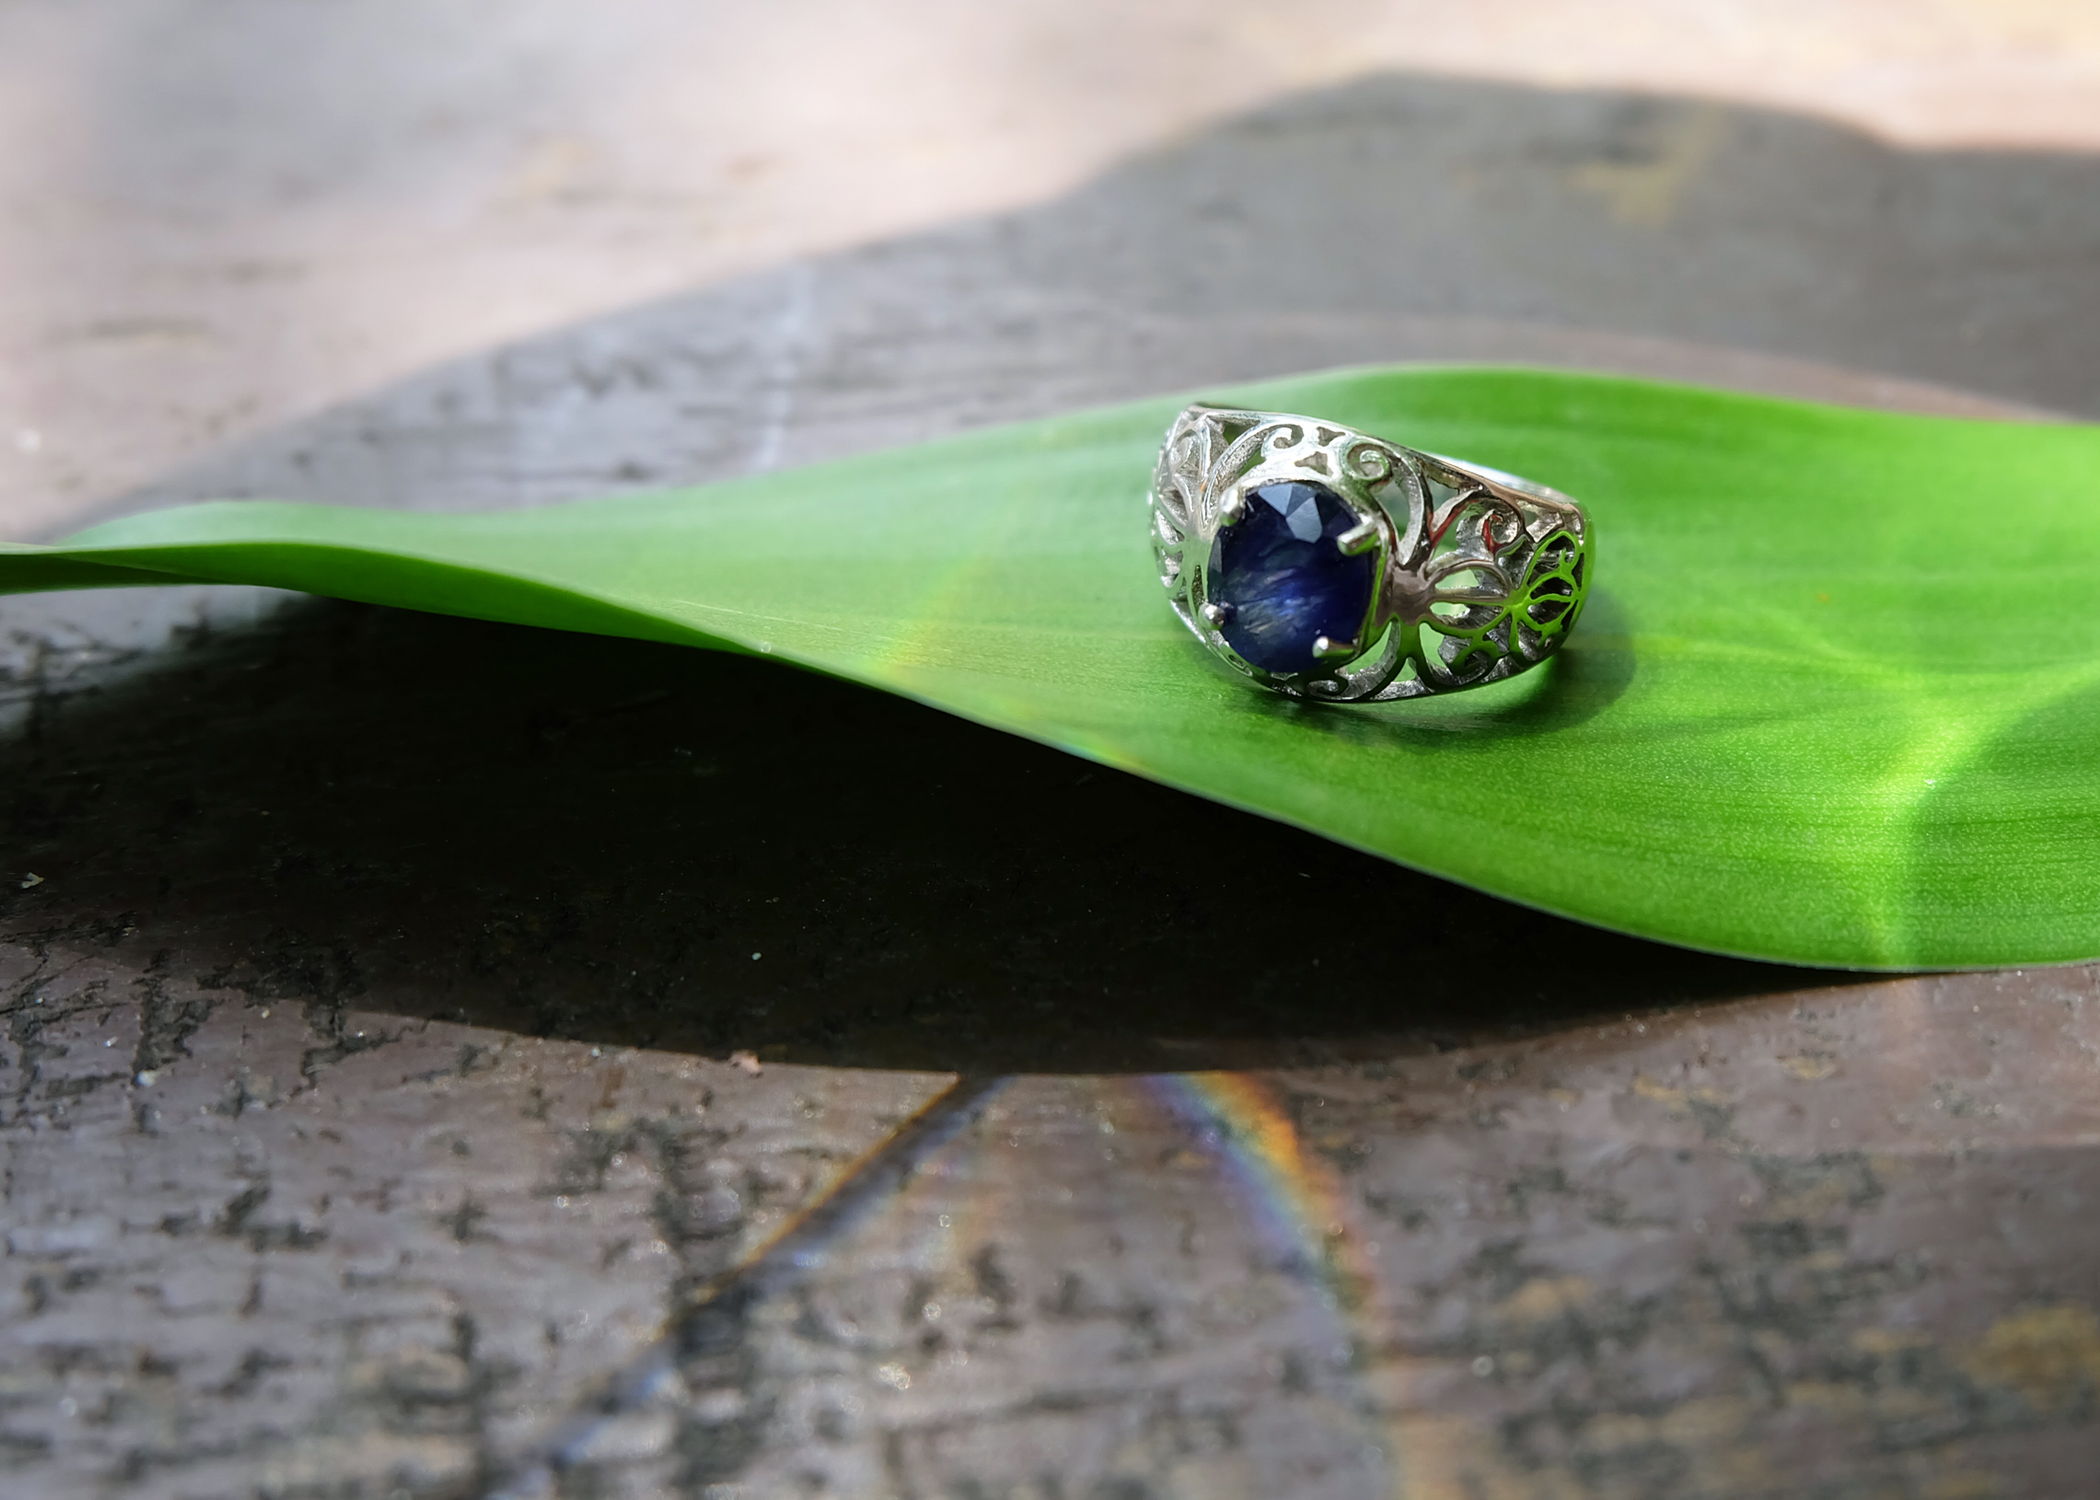 Blue Sapphire, Sterling Silver 92.5%